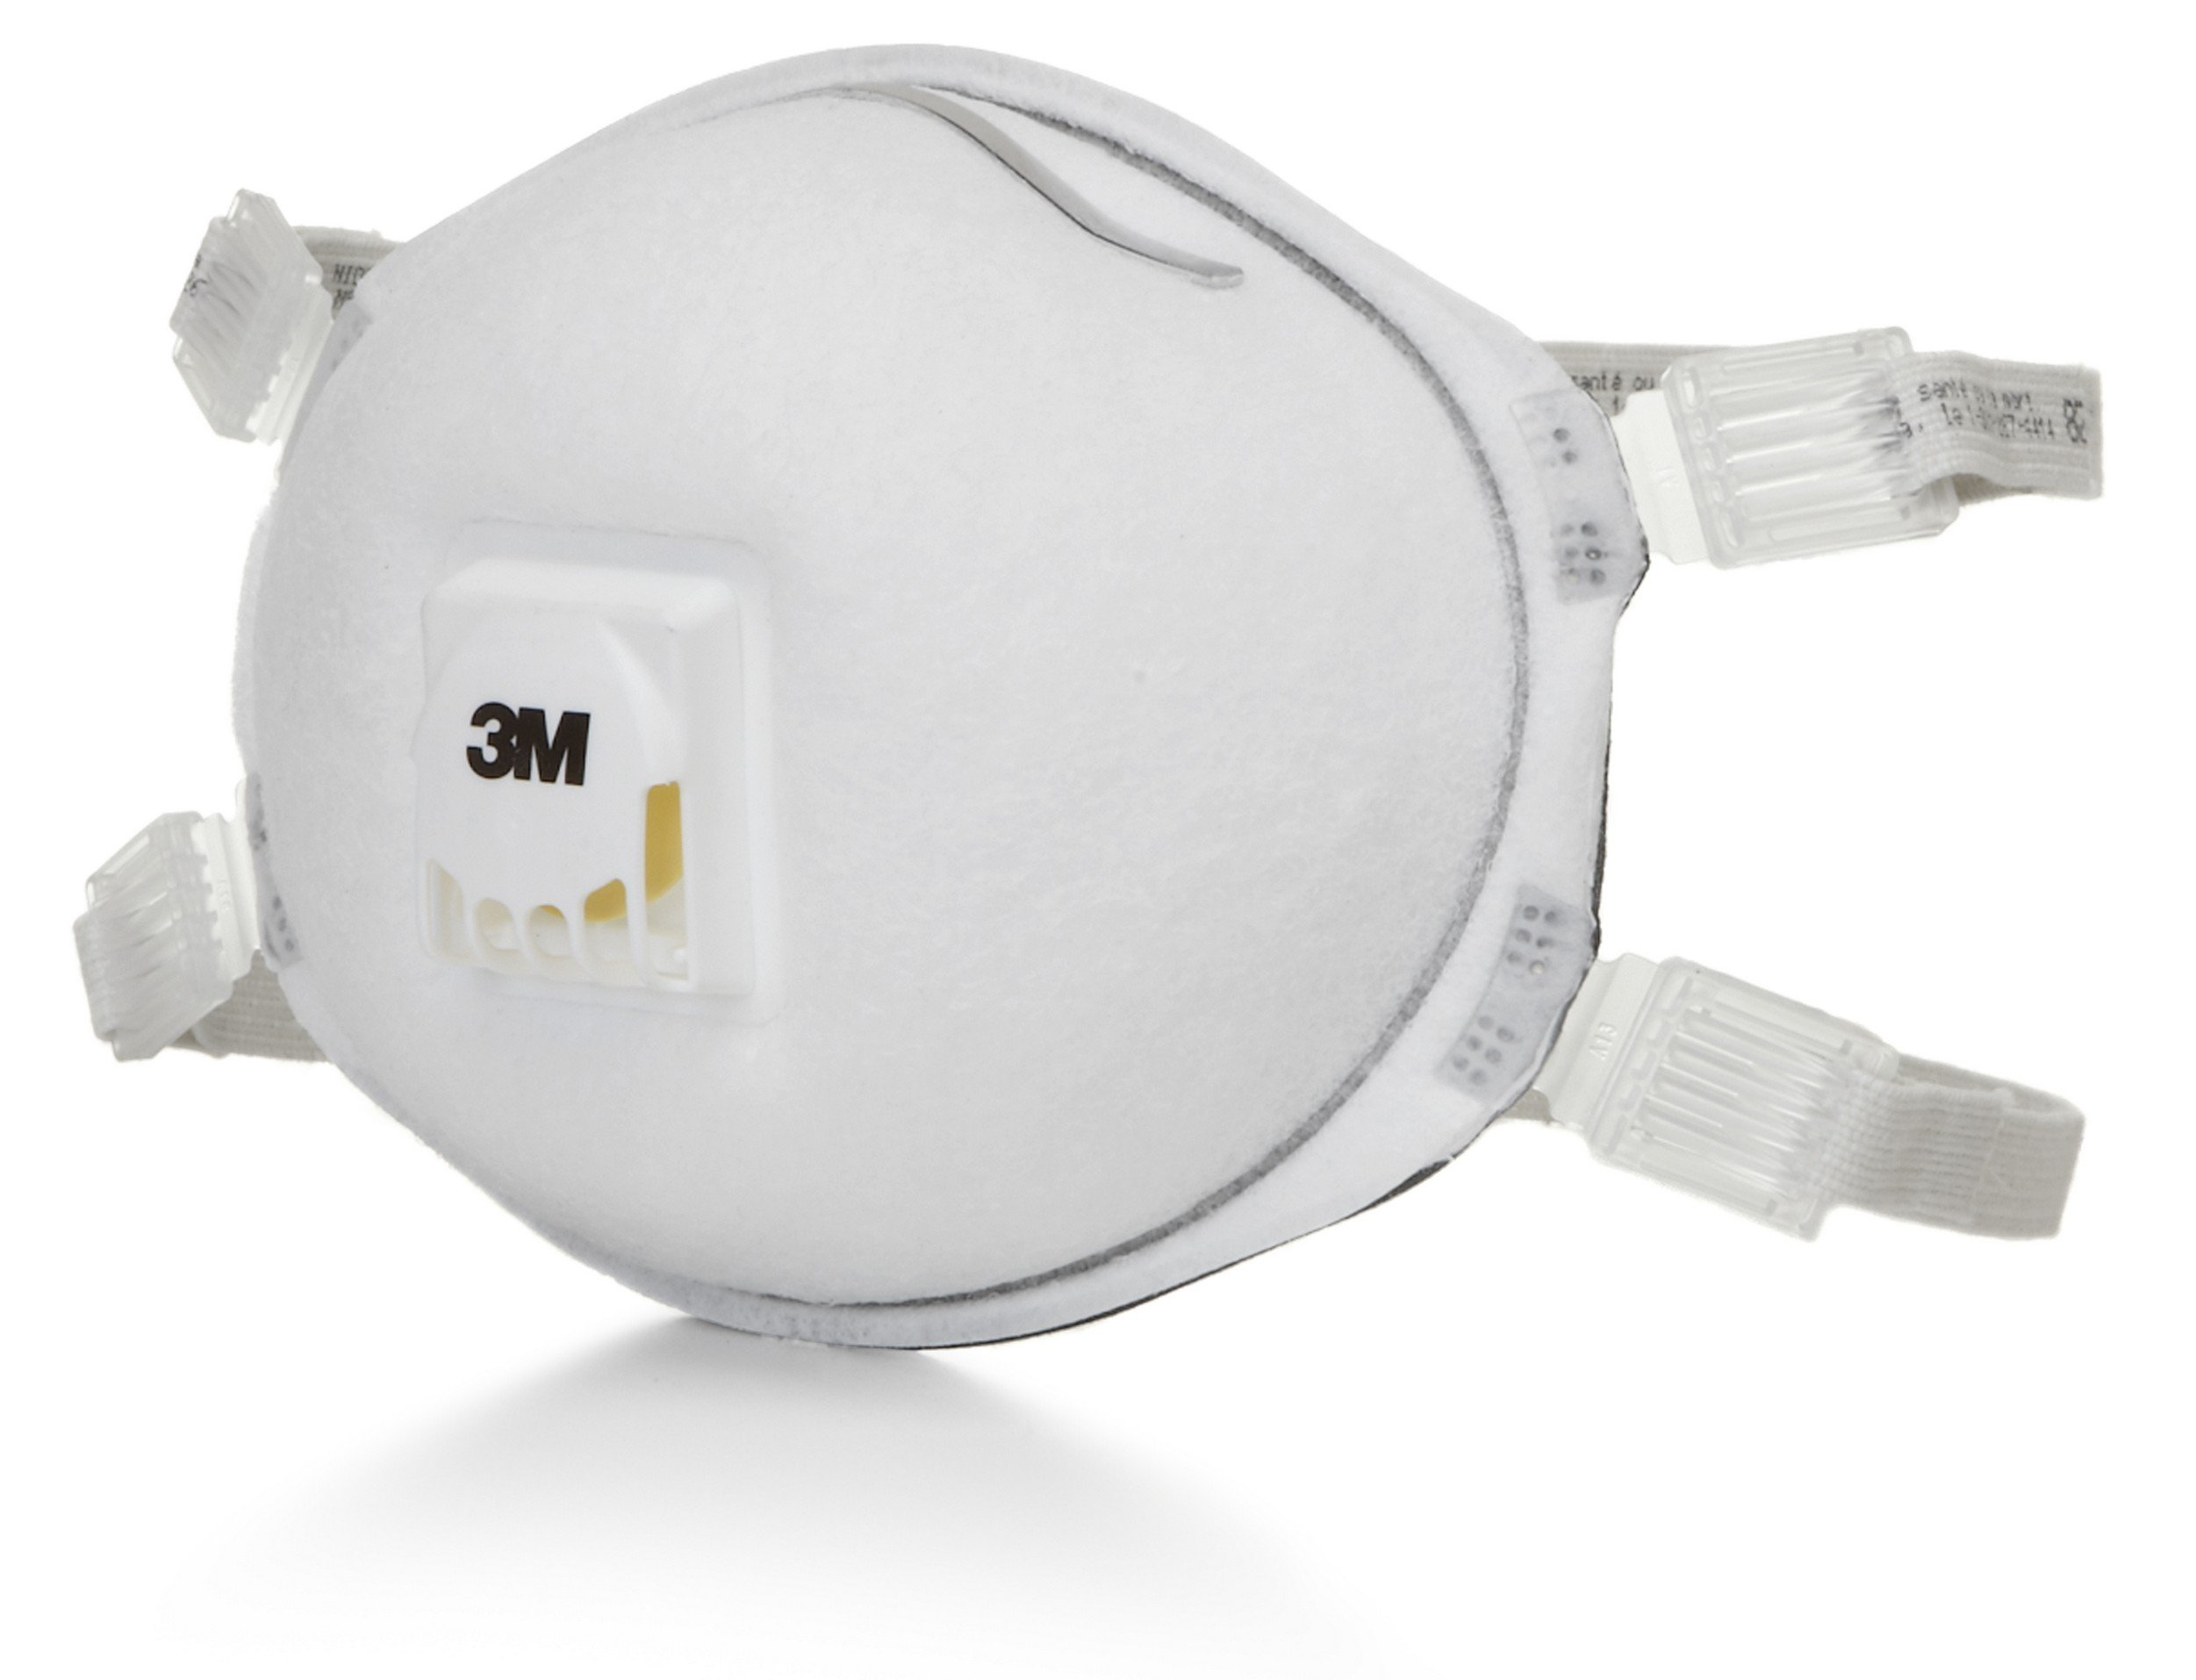 3M 54141 Particulate Welding Respirator 8212, N95, with Faceseal (Pack of 10) by 3M Personal Protective Equipment (Image #3)